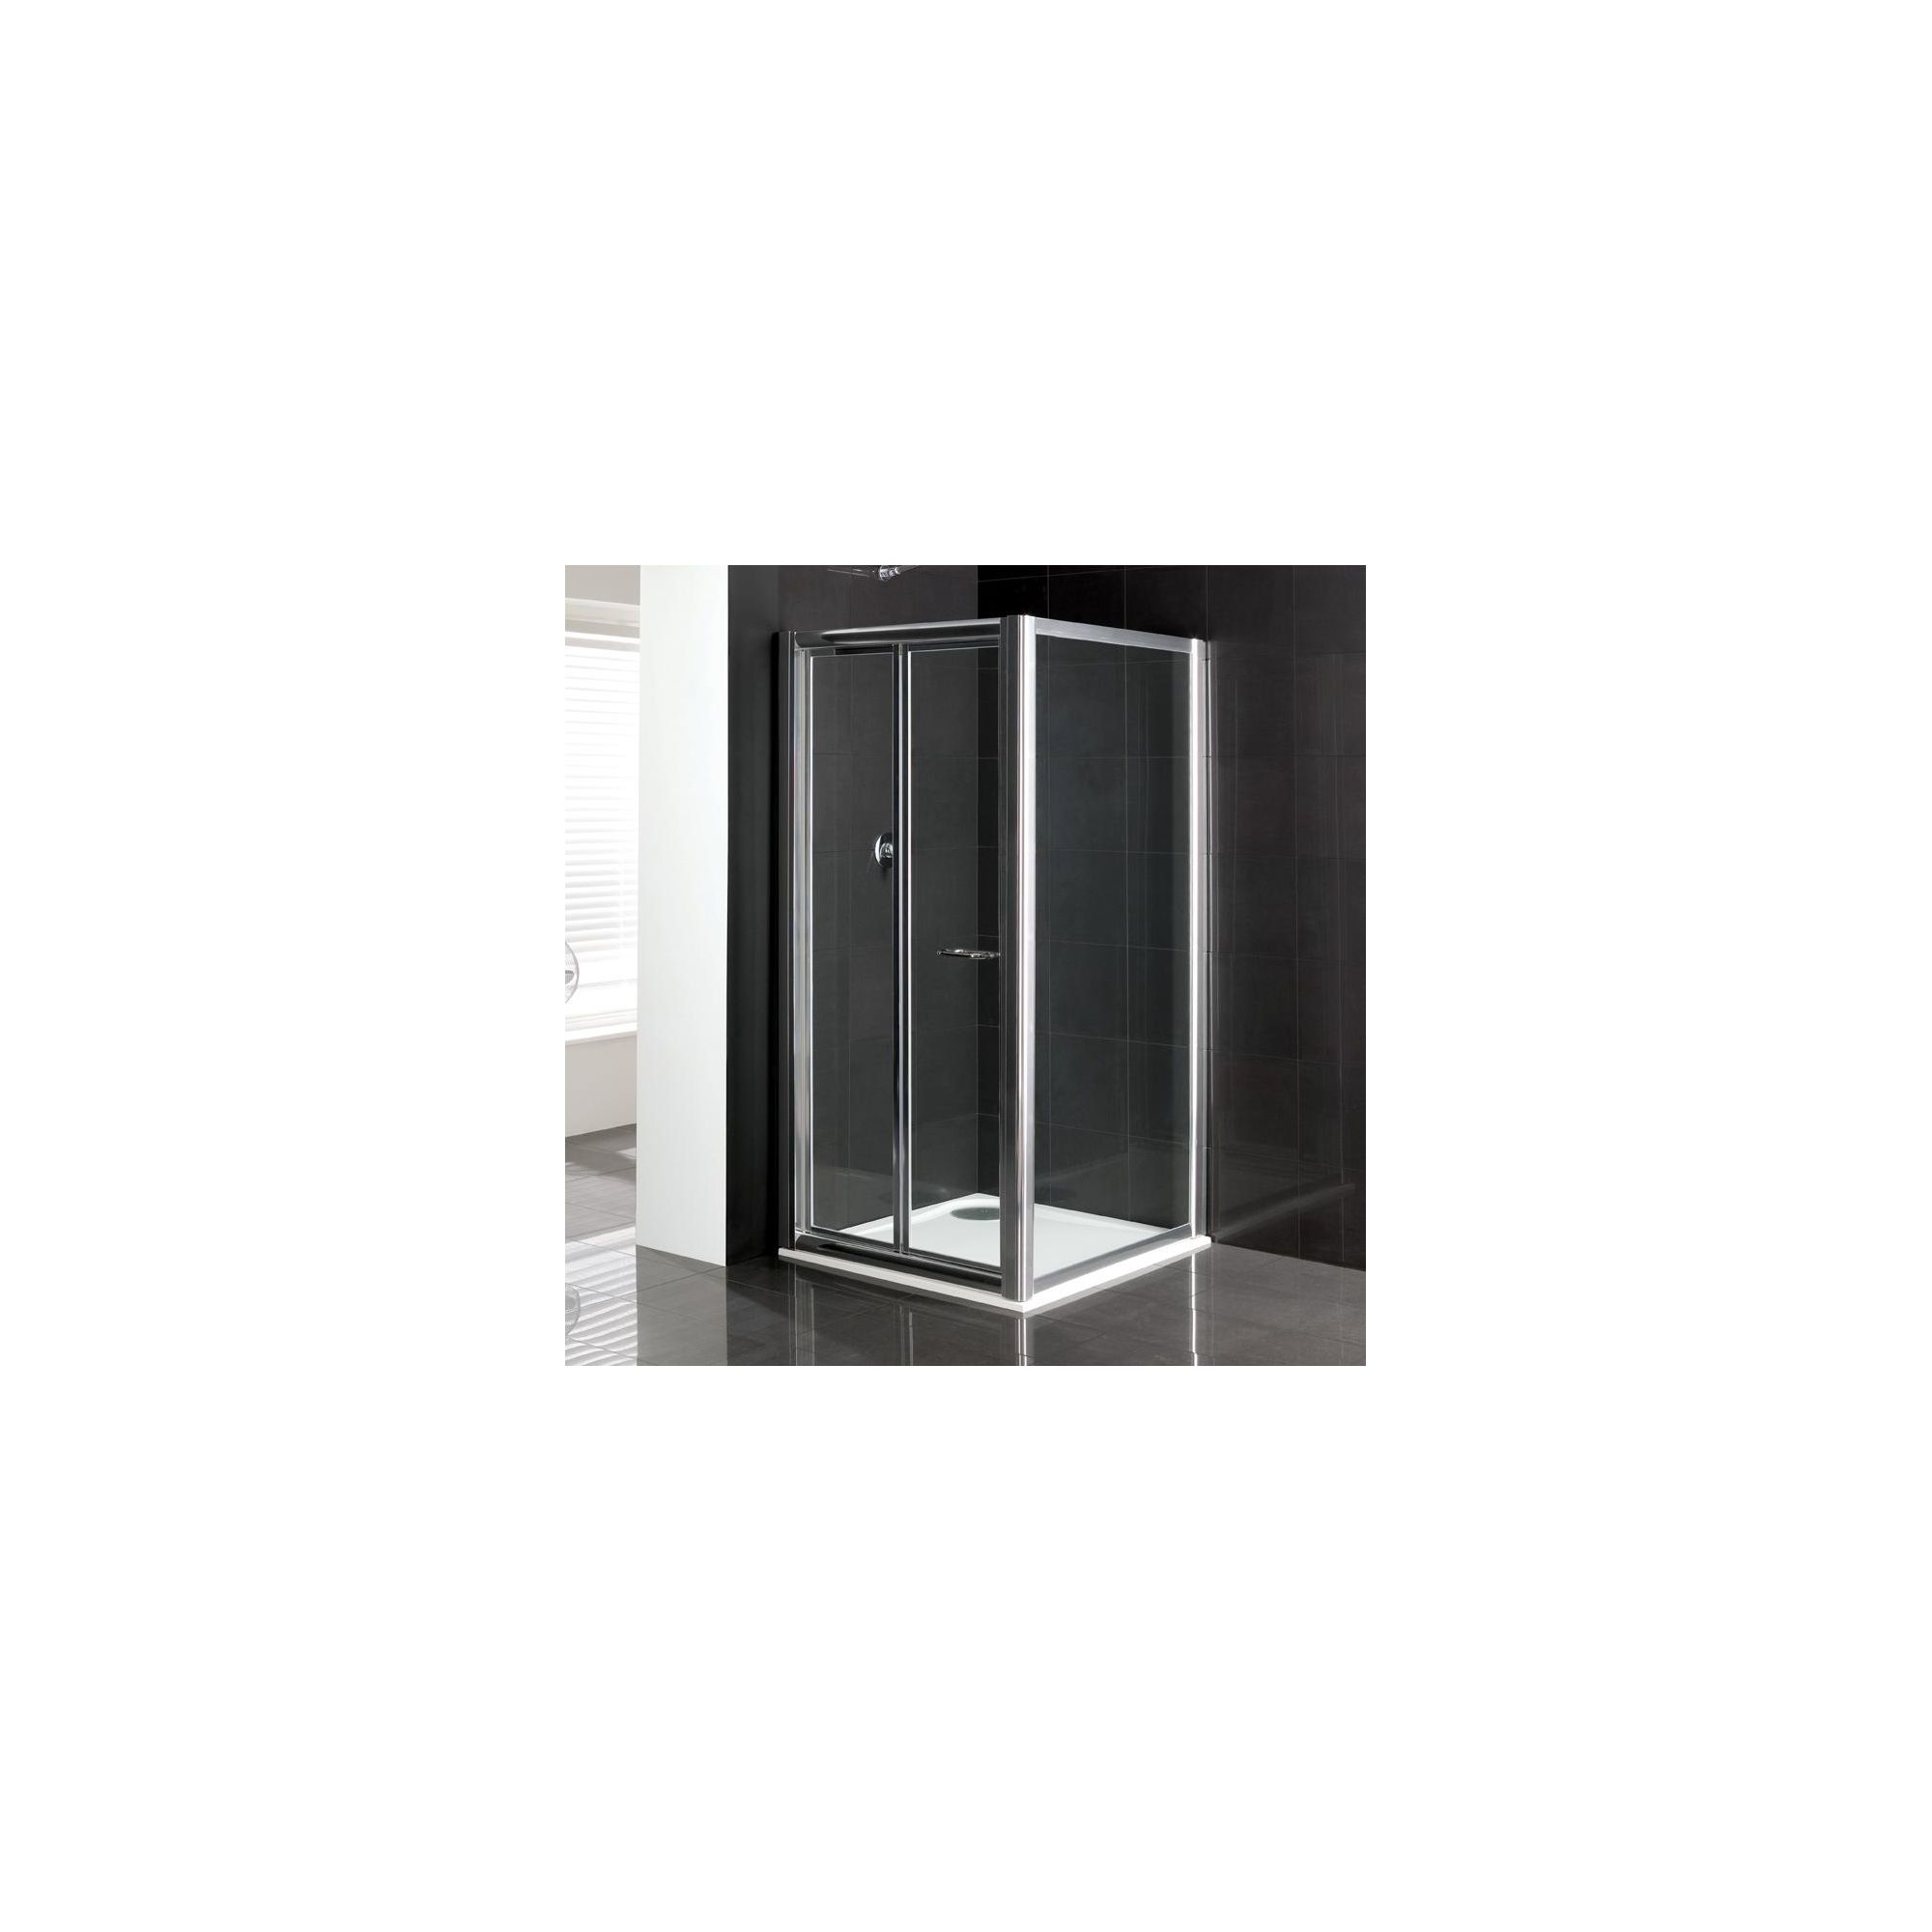 Duchy Elite Silver Bi-Fold Door Shower Enclosure, 1000mm x 800mm, Standard Tray, 6mm Glass at Tesco Direct